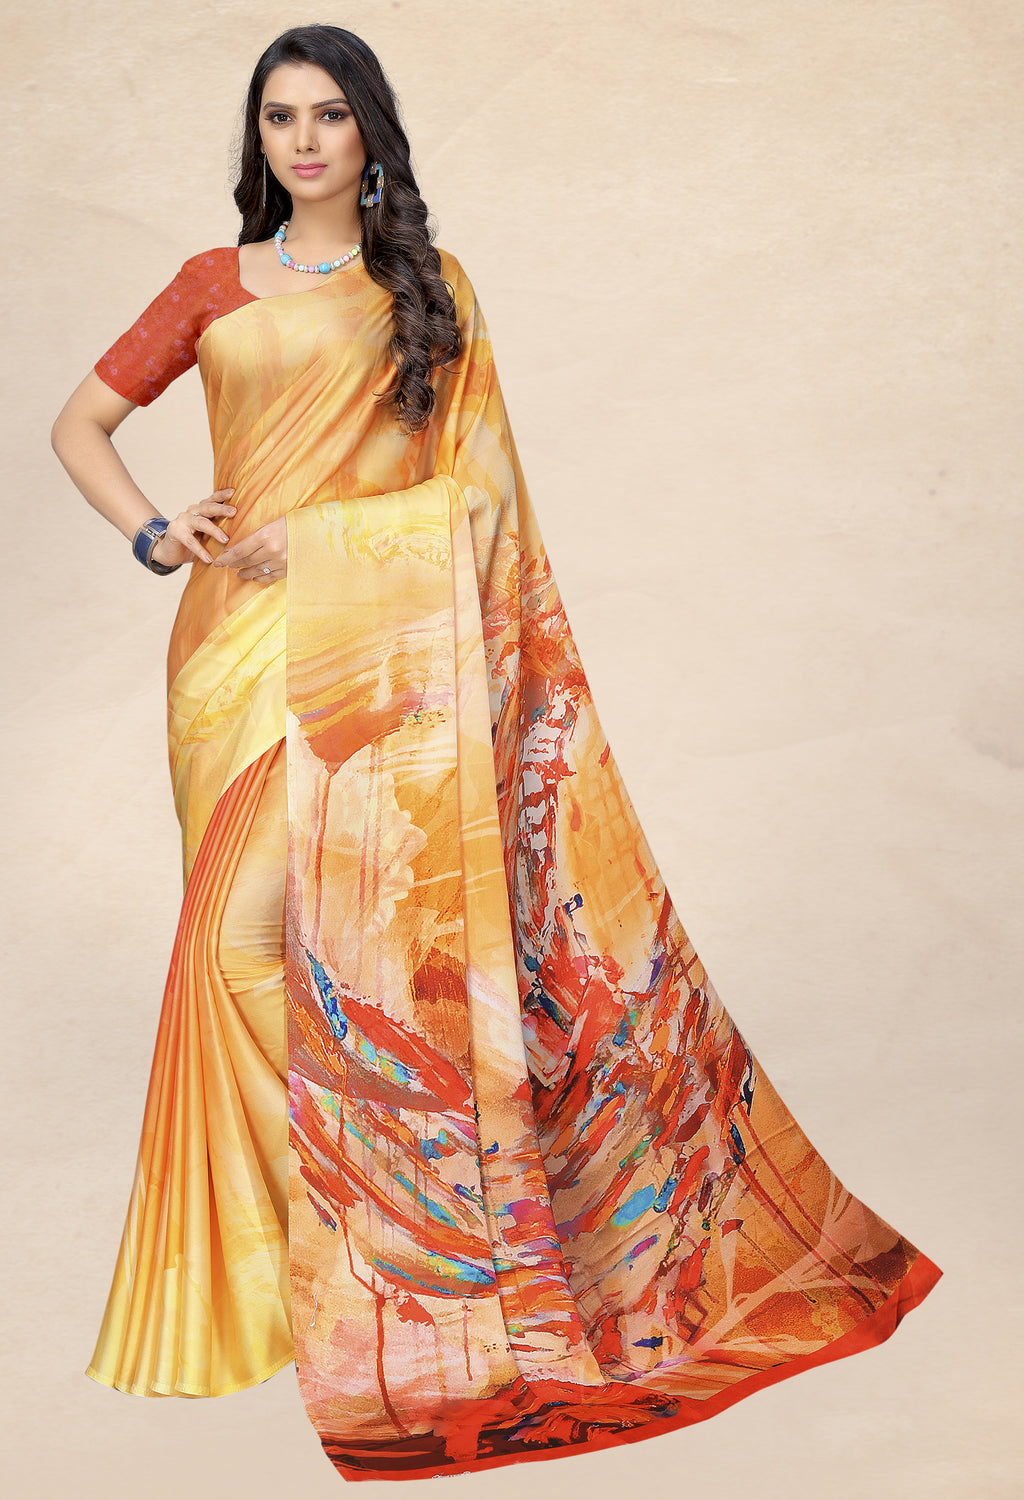 Yellow & Orange Color Satin Digital Print Kitty Party Sarees NYF-8140